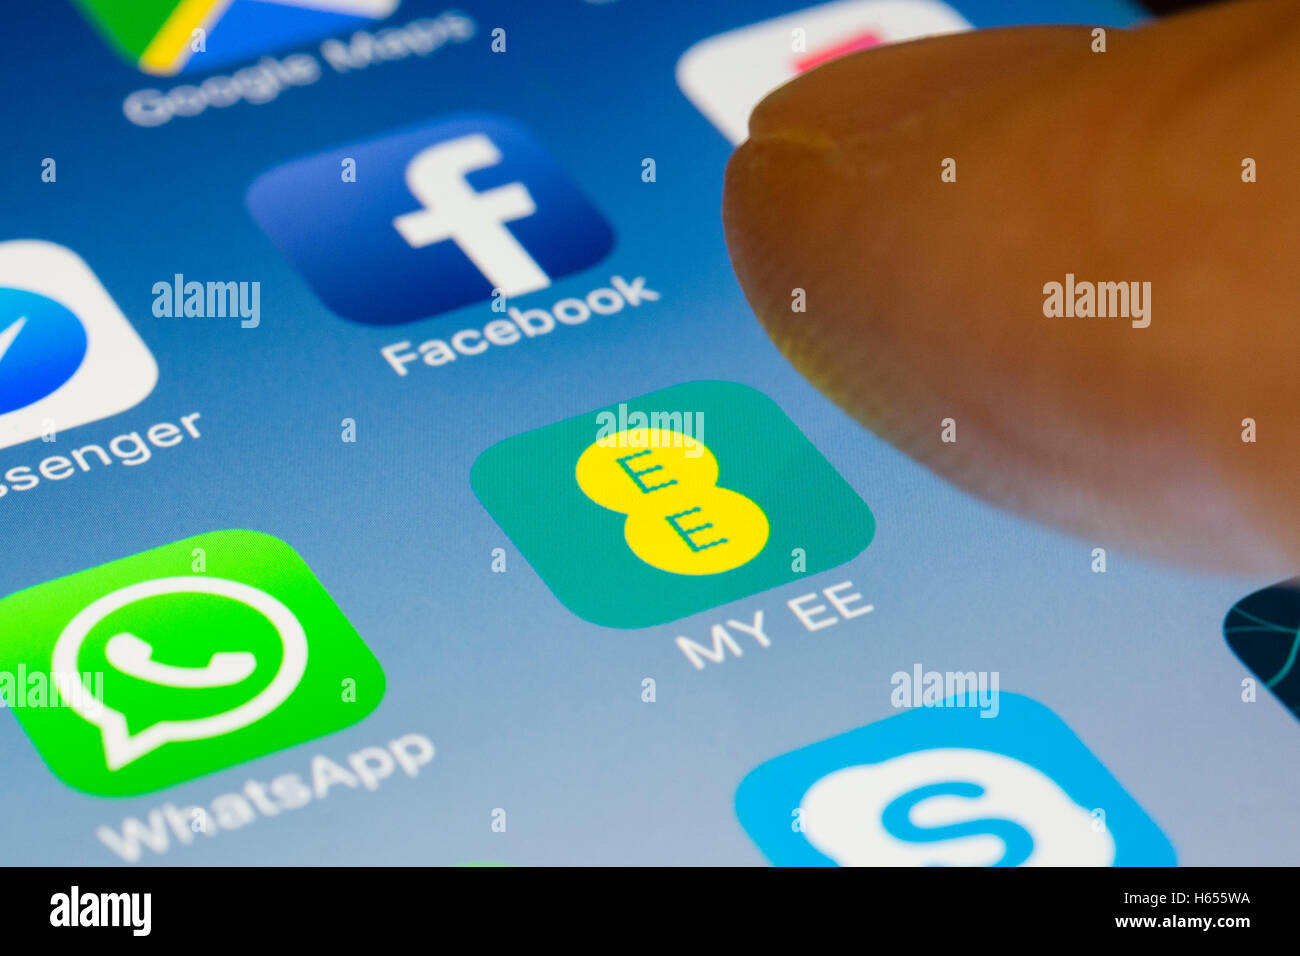 My EE mobile phone network provider online app close up on iPhone smart phone screen Stock Photo